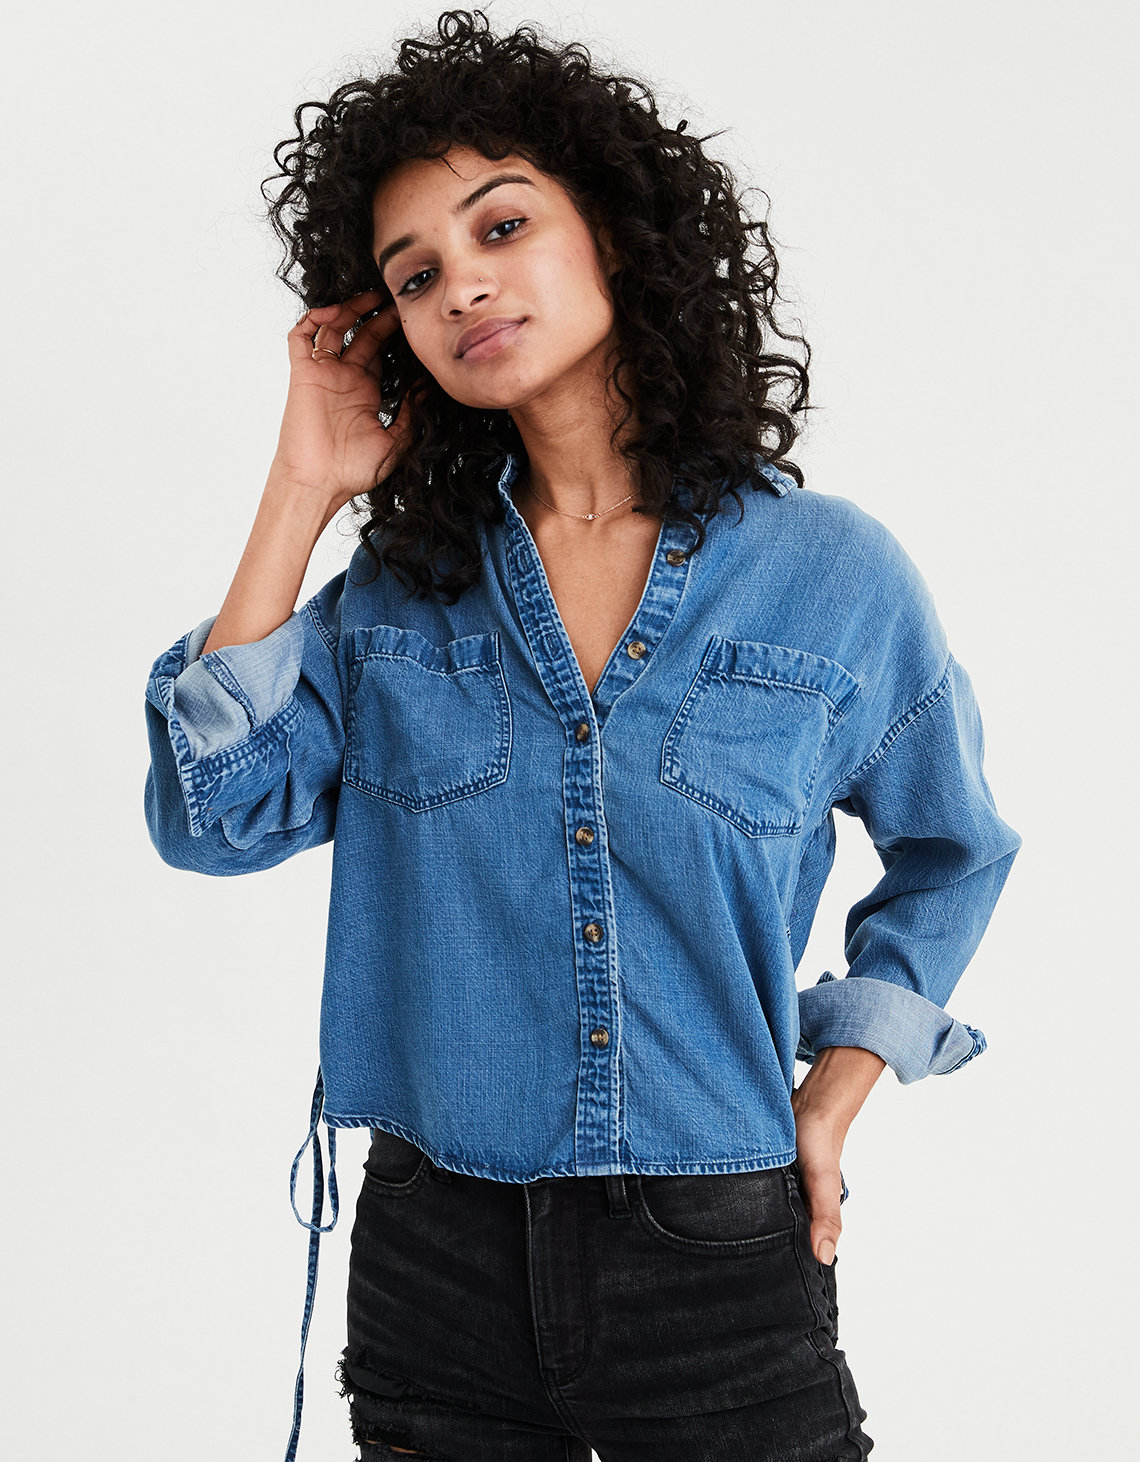 893d4ee4784 AE Cropped Denim Shirt. Placeholder image. Product Image